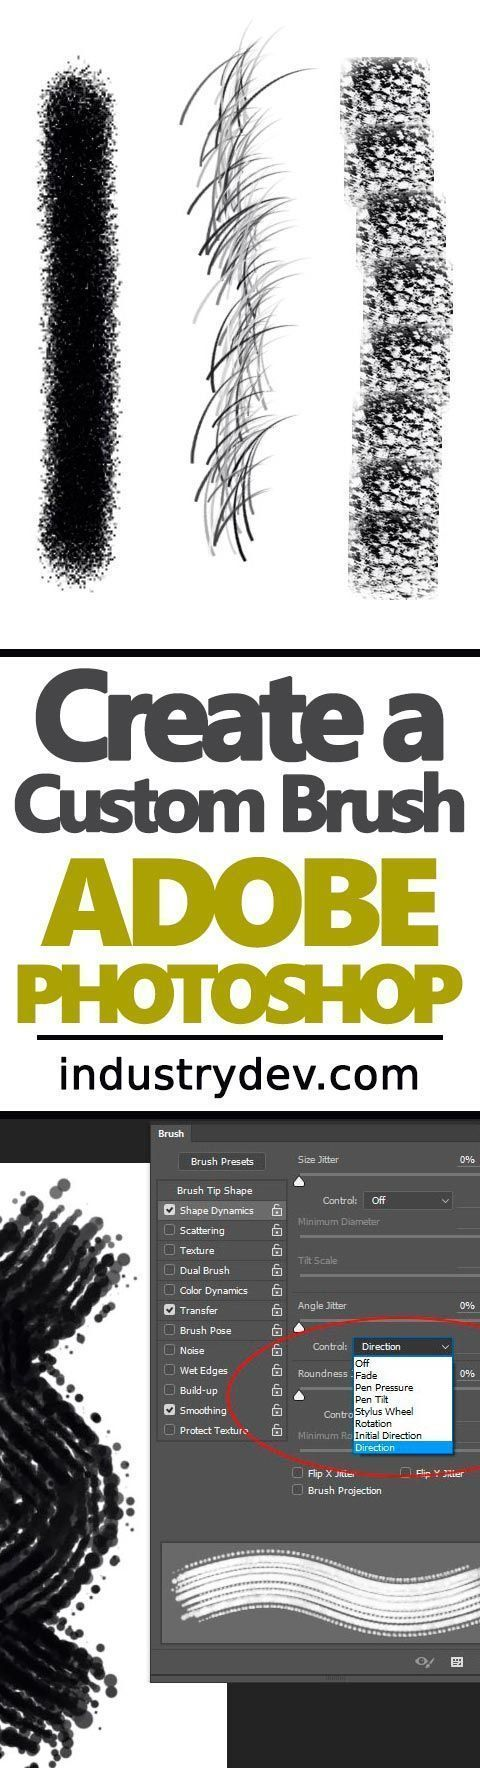 How To Create Custom Brushes in Adobe Photoshop: If you're an illustrator or someone who merely needs to use a brush that isn't found as a preset in Adobe Photoshop, this post was written just for you. Photoshop offers an enormous amount of flexibility wh